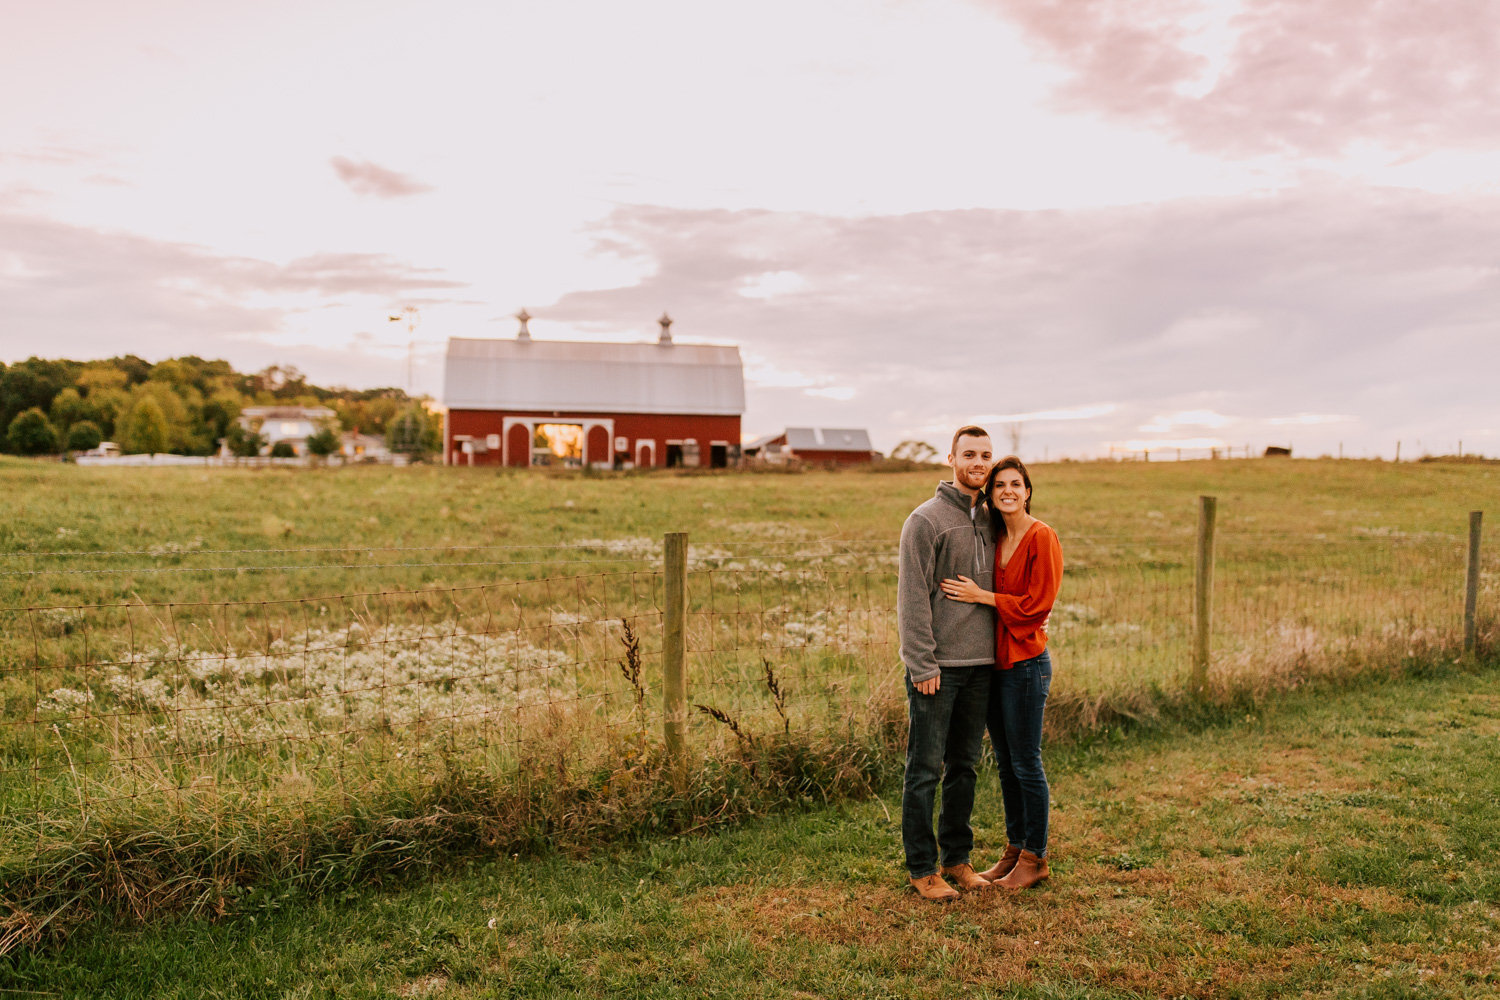 Sunset-Autumn-Engagement-Session-Prophetstown-54